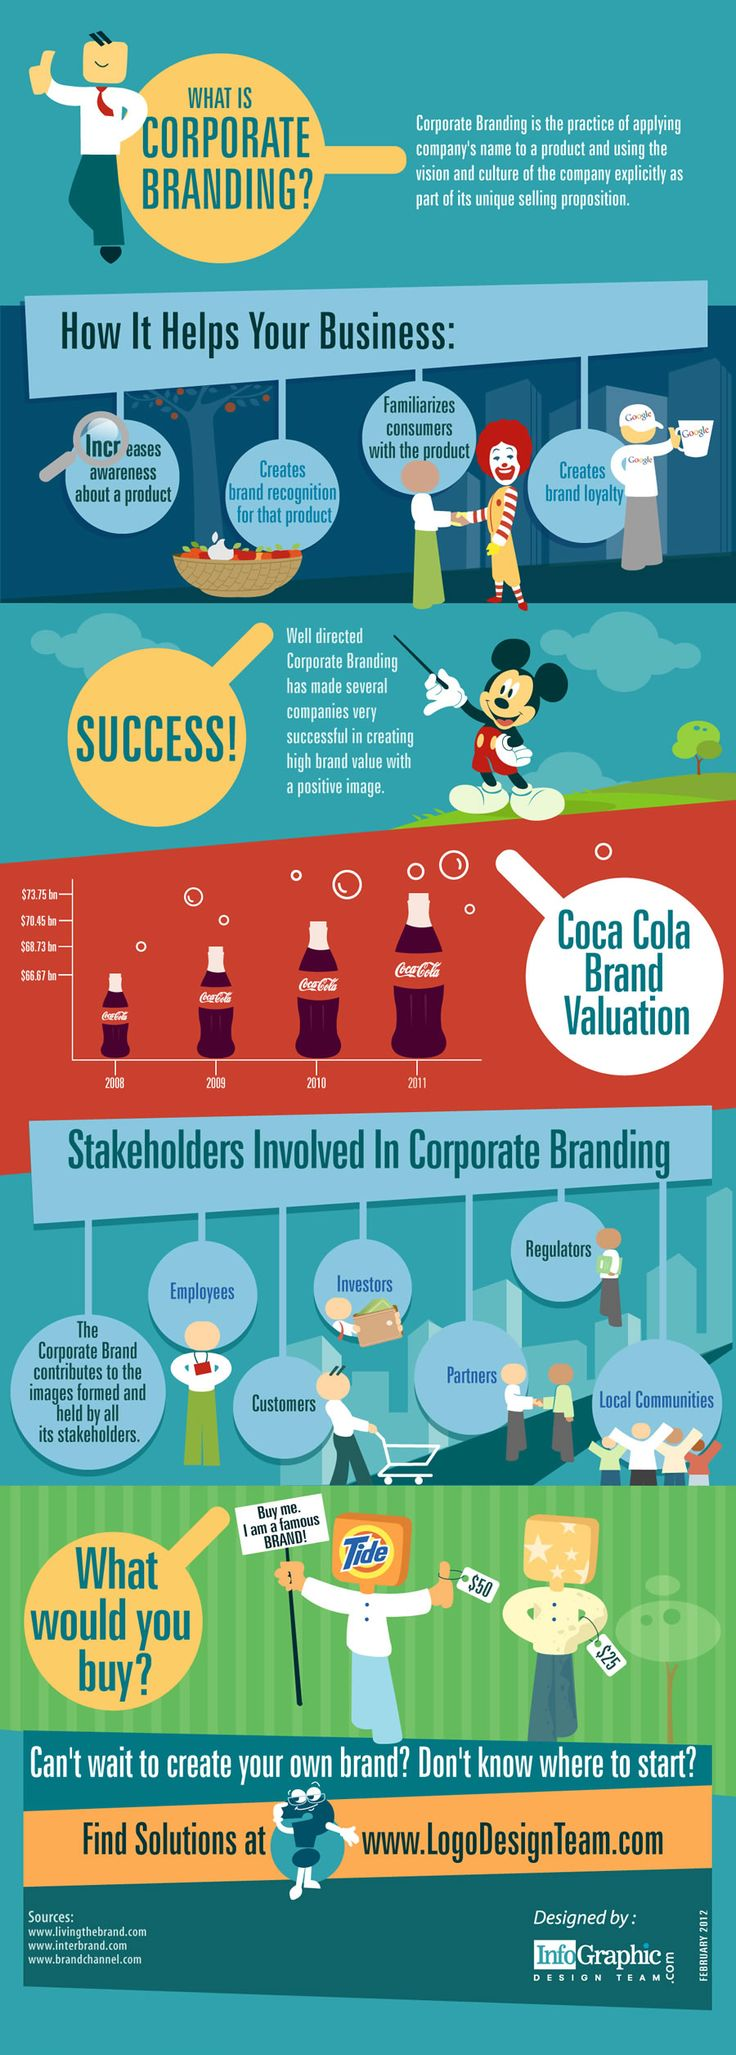 What is #CorporateBranding?